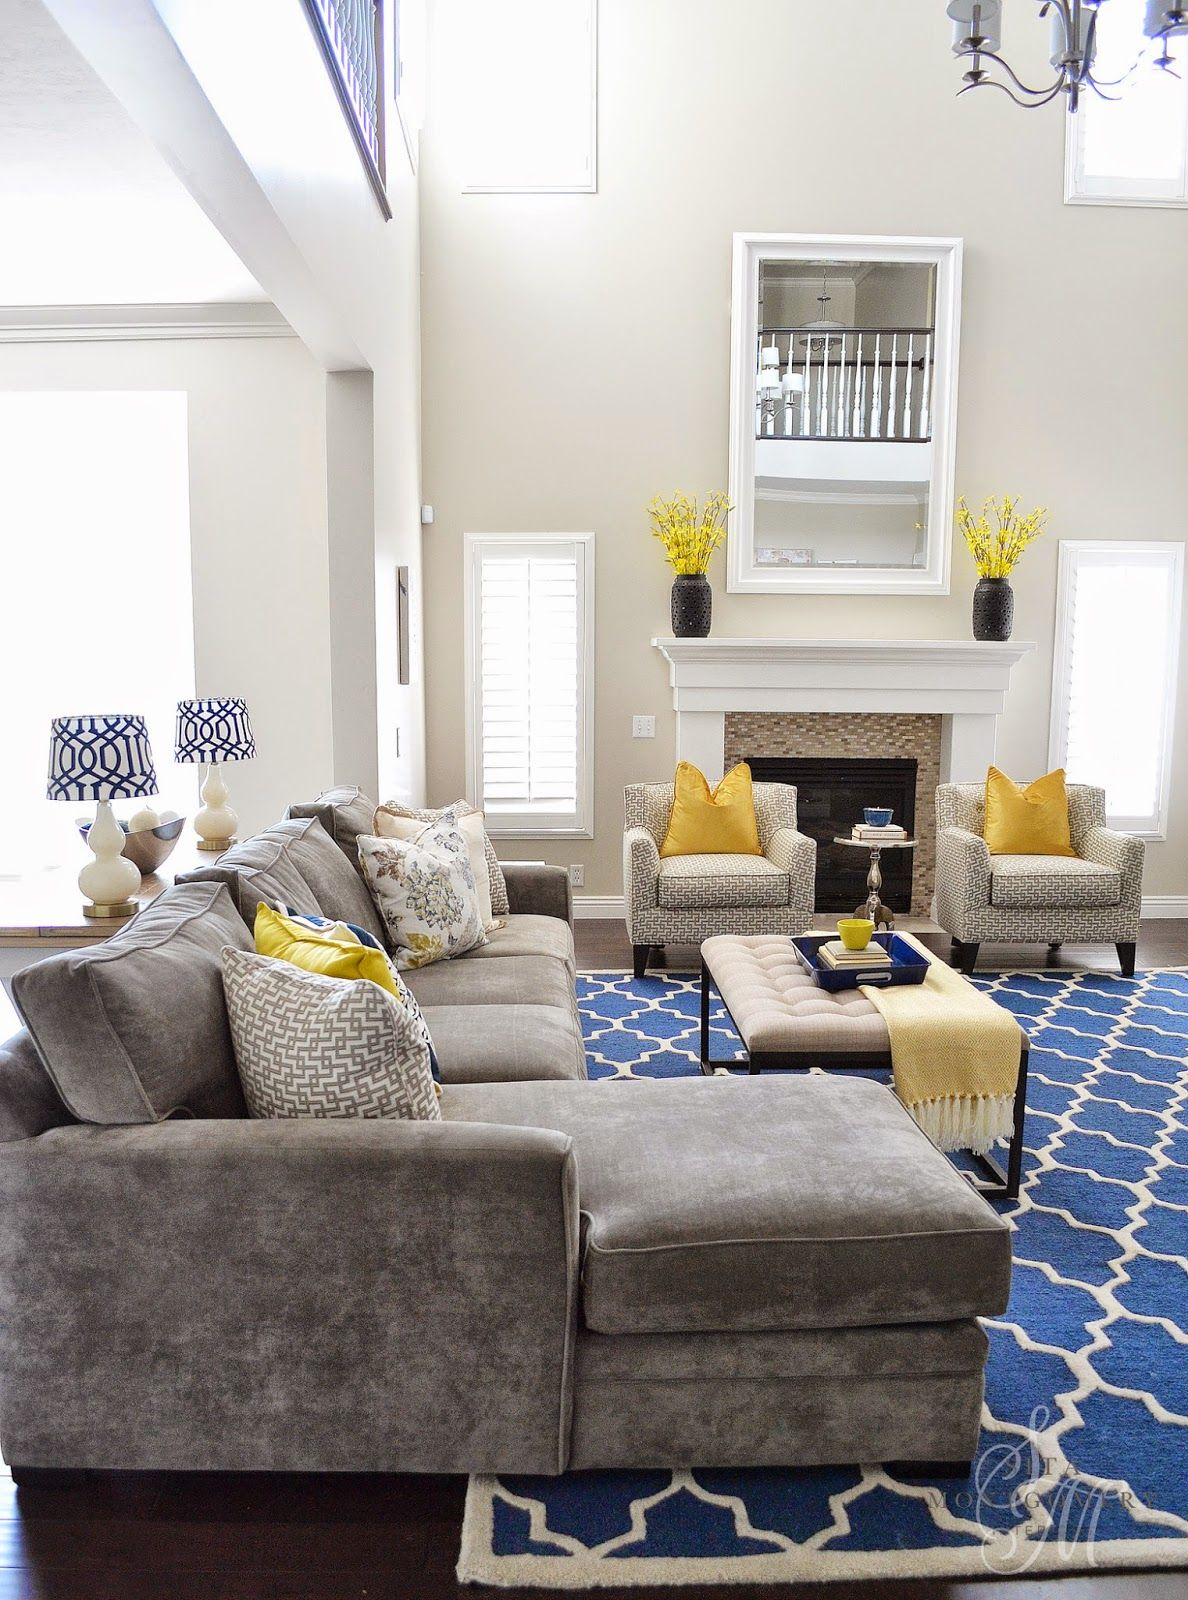 Sita Montgomery Interiors: Client Project Reveal: The Summerwood Project  Renovation With Grey, Yellow And Blue Accents